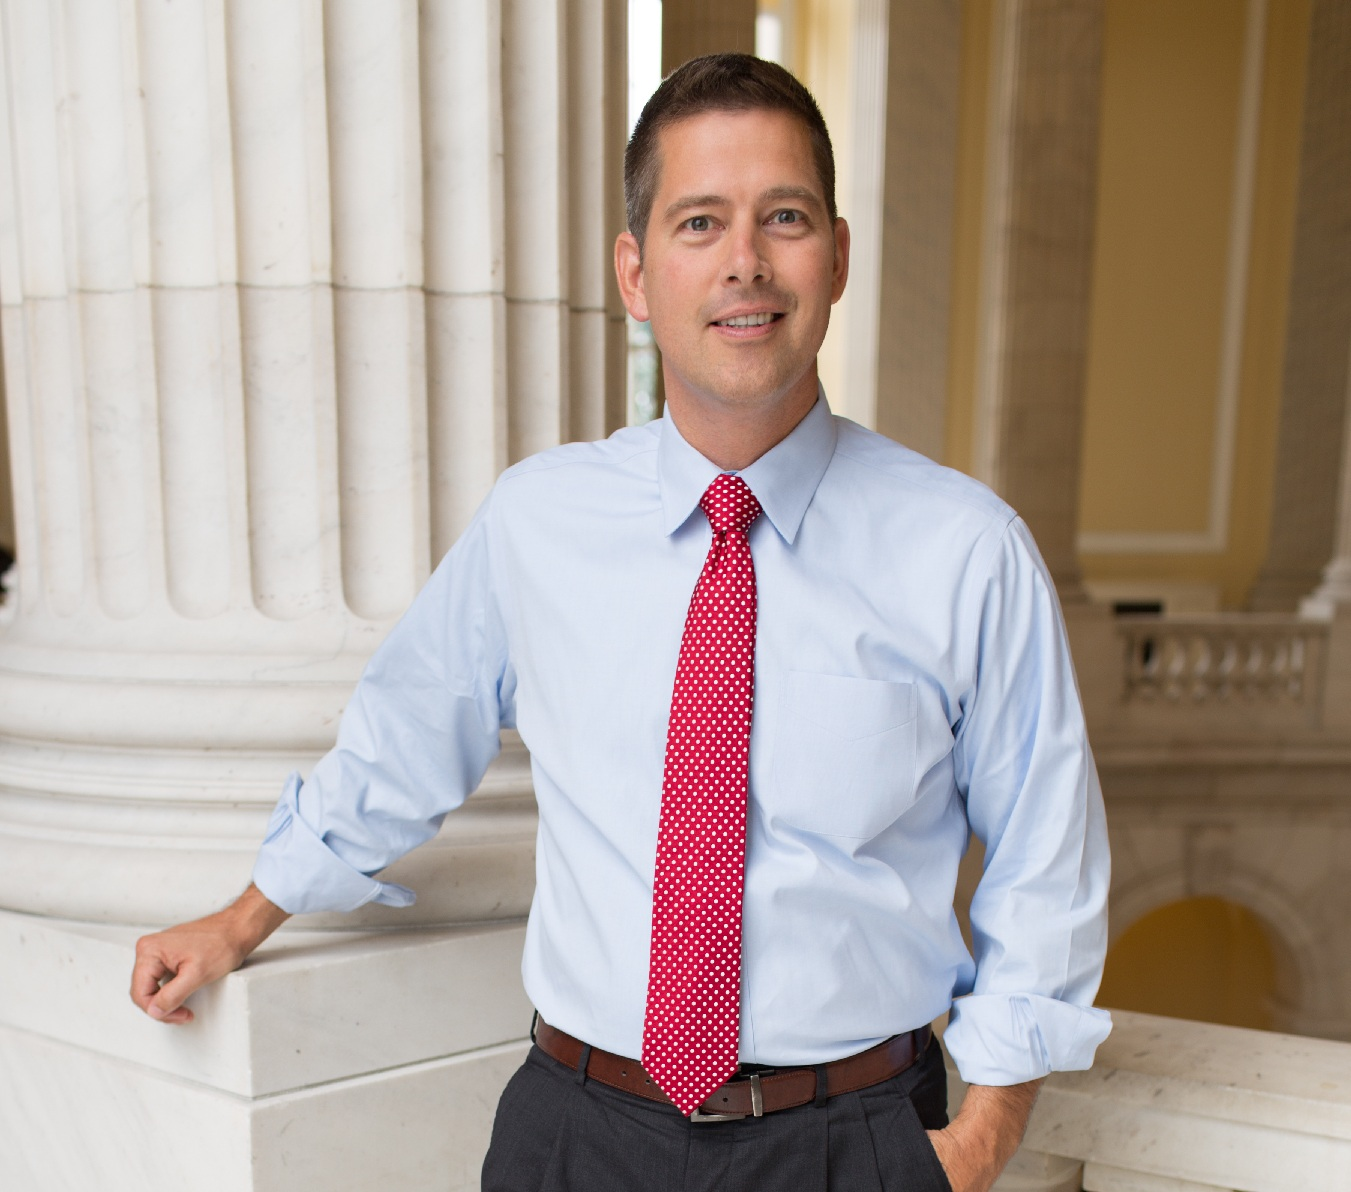 [Sean Duffy, U.S. Representative, Wisconsin's Seventh District]